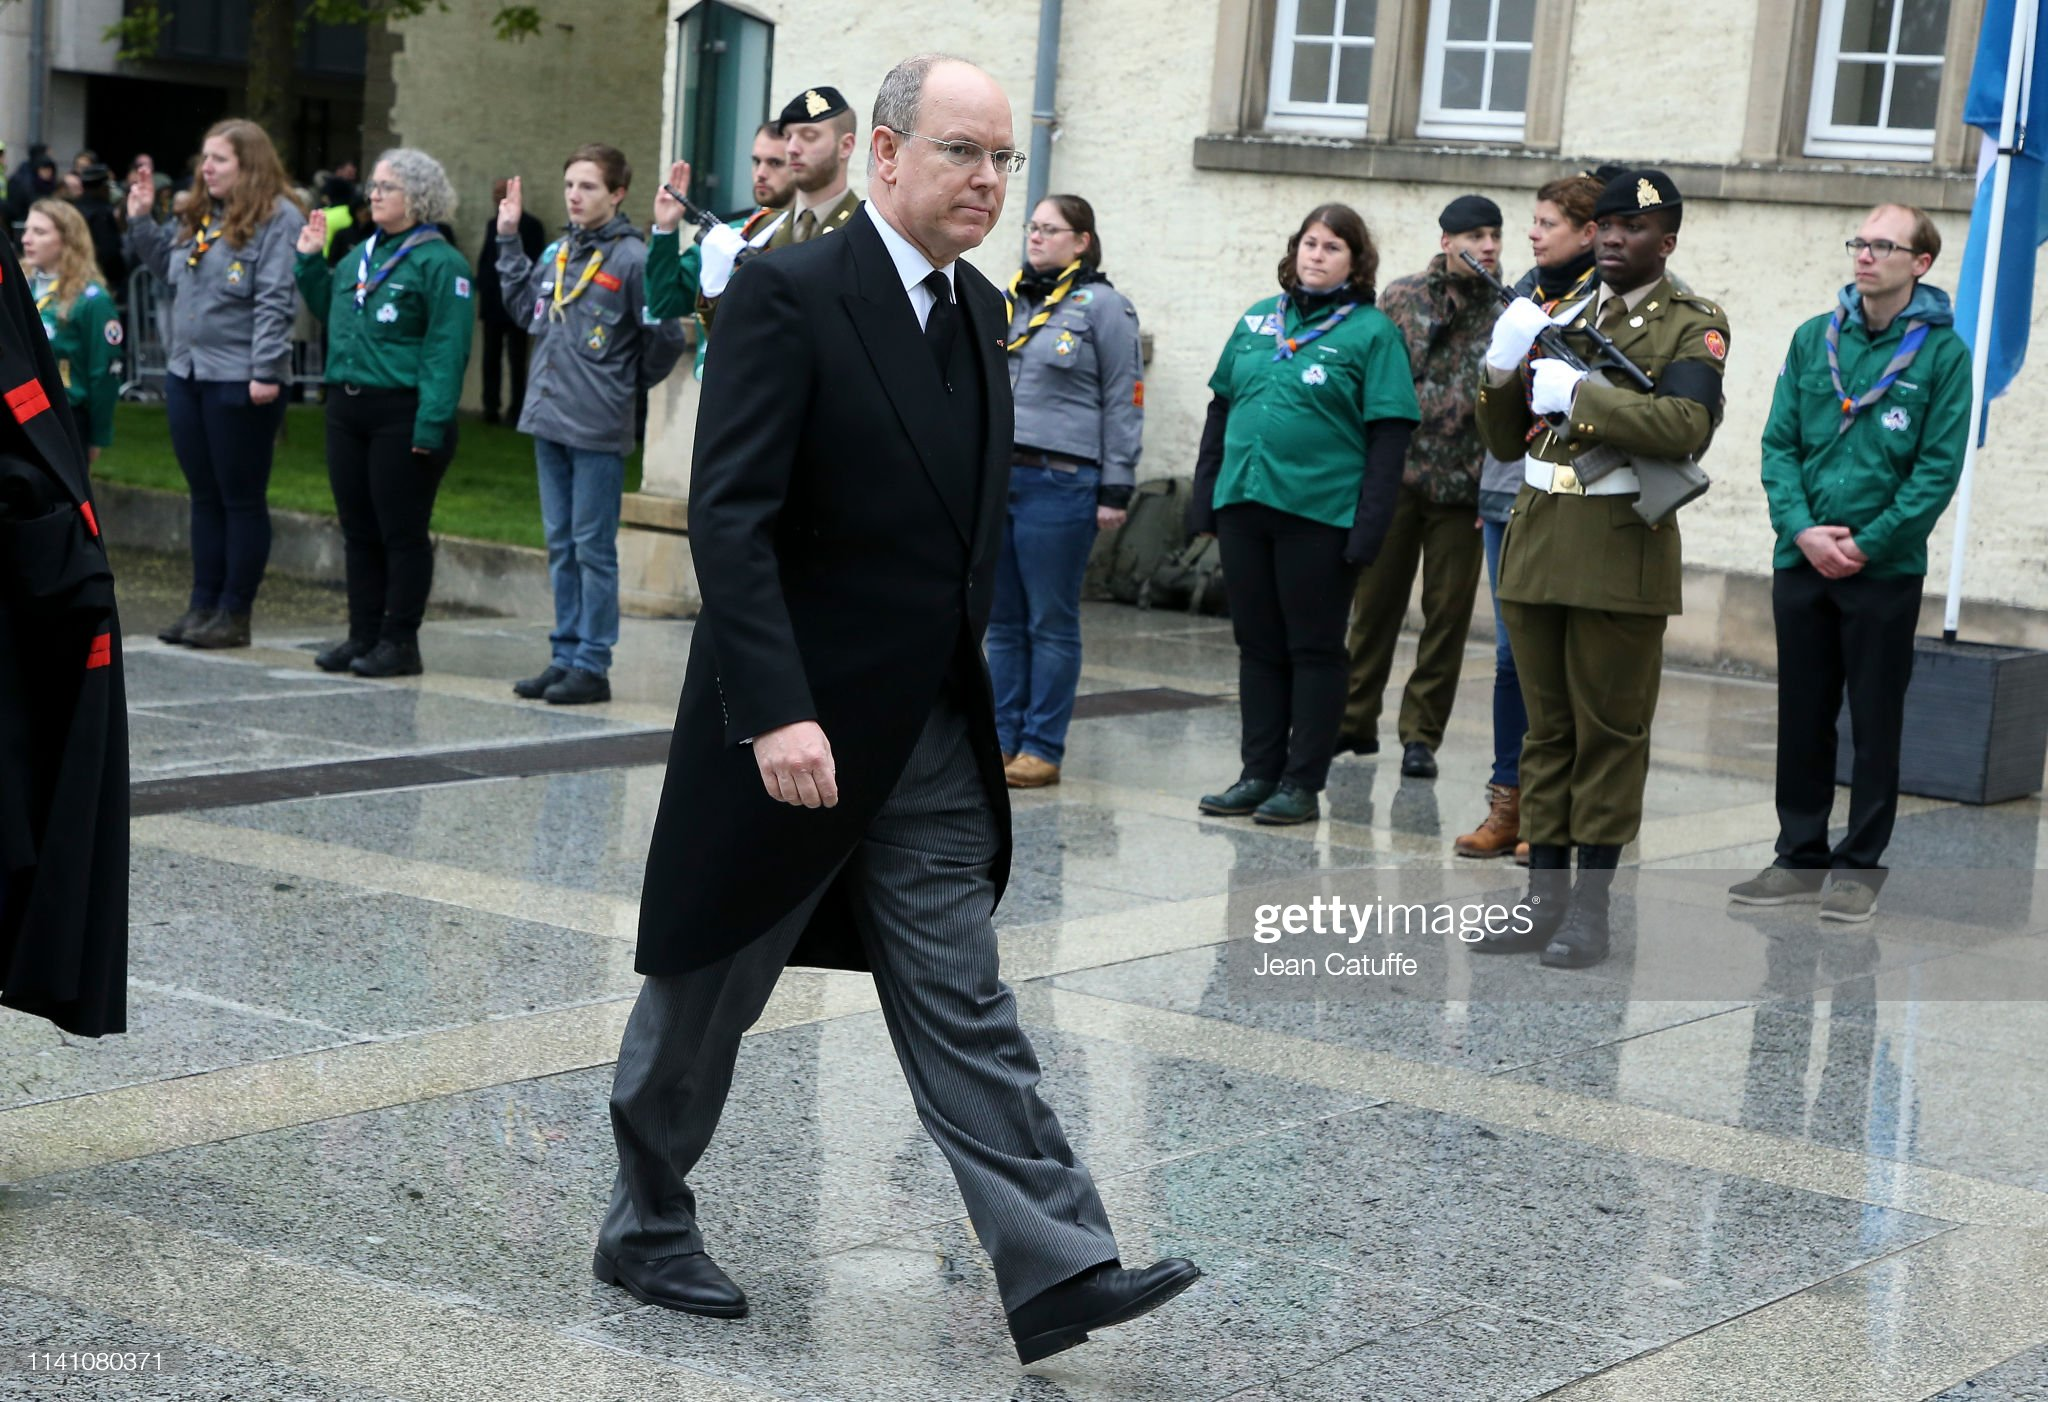 Похороны Великого Герцога Жана https://media.gettyimages.com/photos/prince-albert-ii-of-monaco-arrives-for-the-funeral-of-grand-duke-jean-picture-id1141080371?s=2048x2048